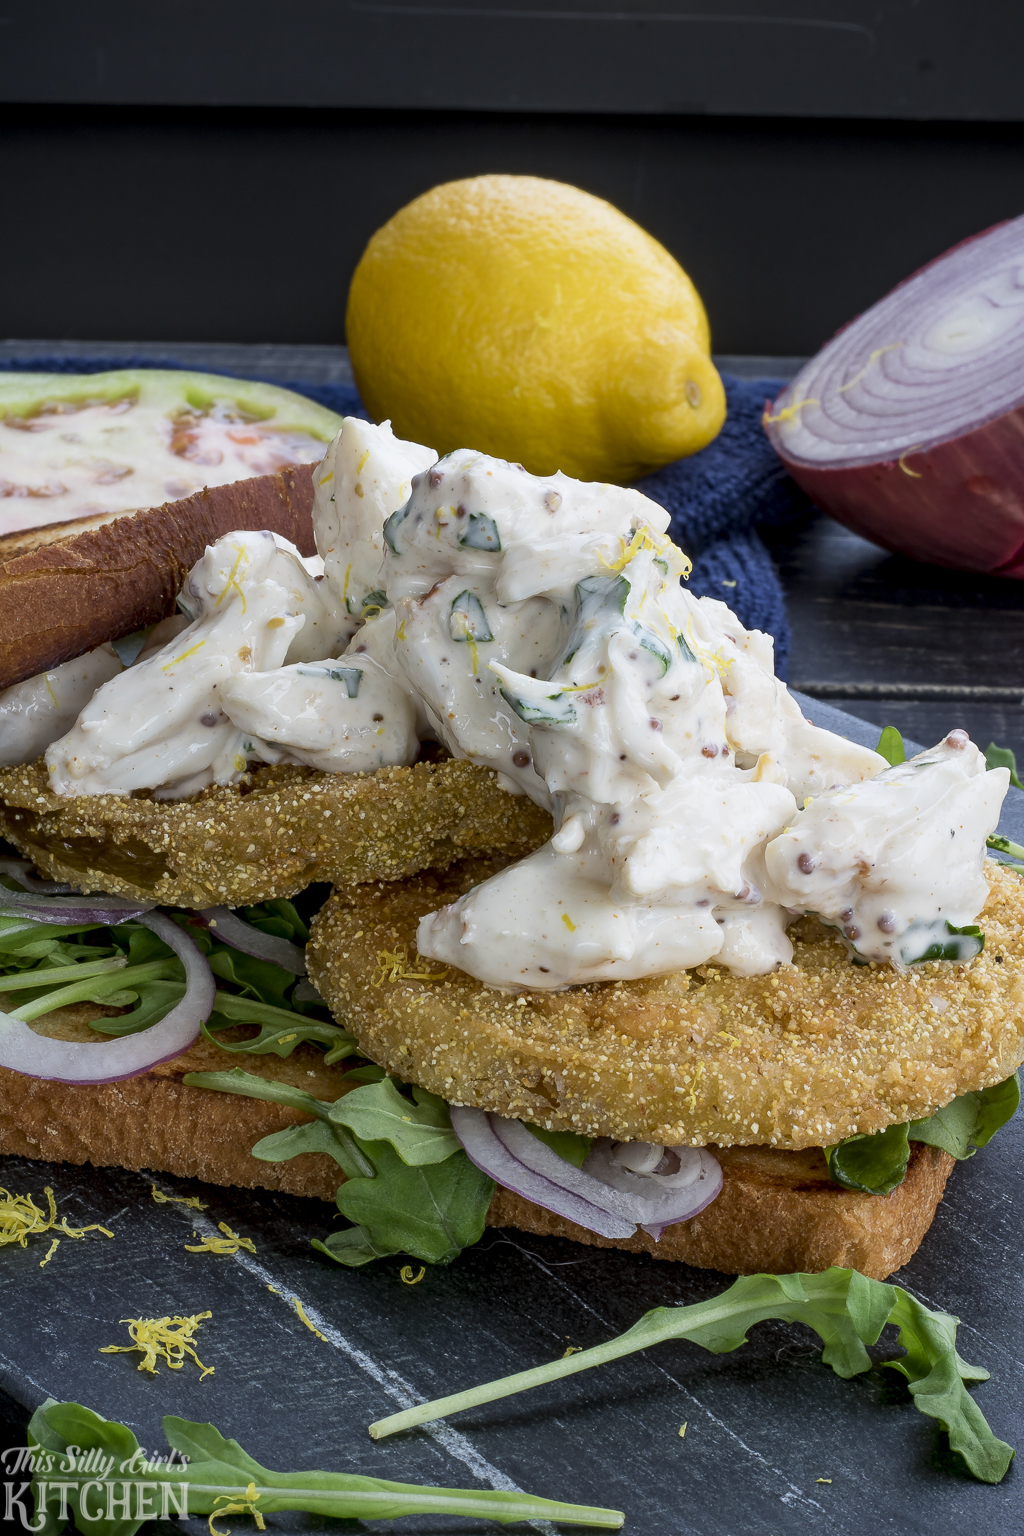 Fried Green Tomato Crab Salad Sandwiches, jumbo lump crab salad over fried green tomatoes, arugula and red onion, all between two slices of bread! Recipe from ThisSillyGirlsKitchen.com